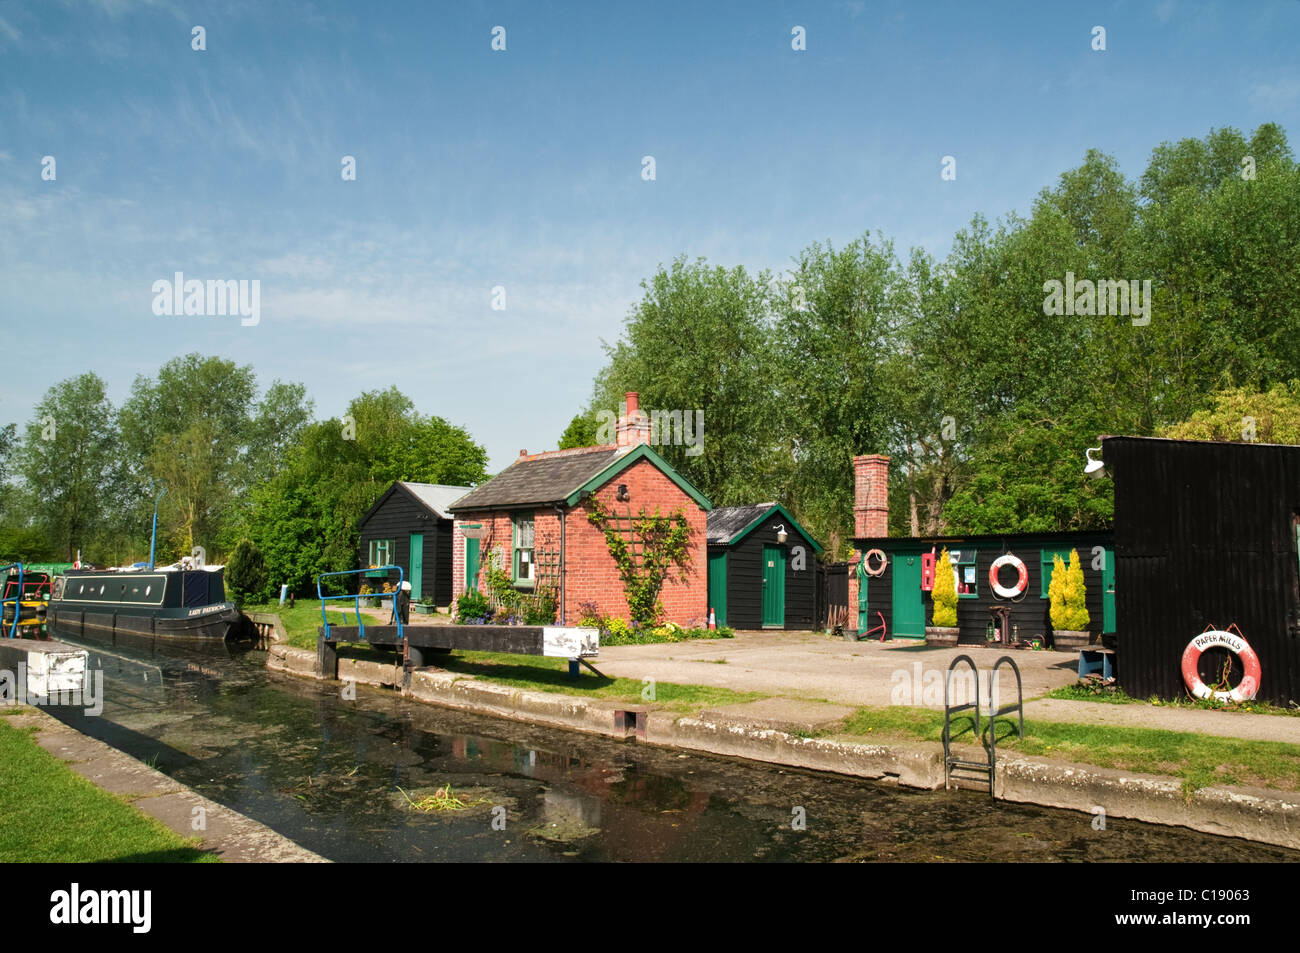 Lock keeper's building on a canal in Essex, England. - Stock Image